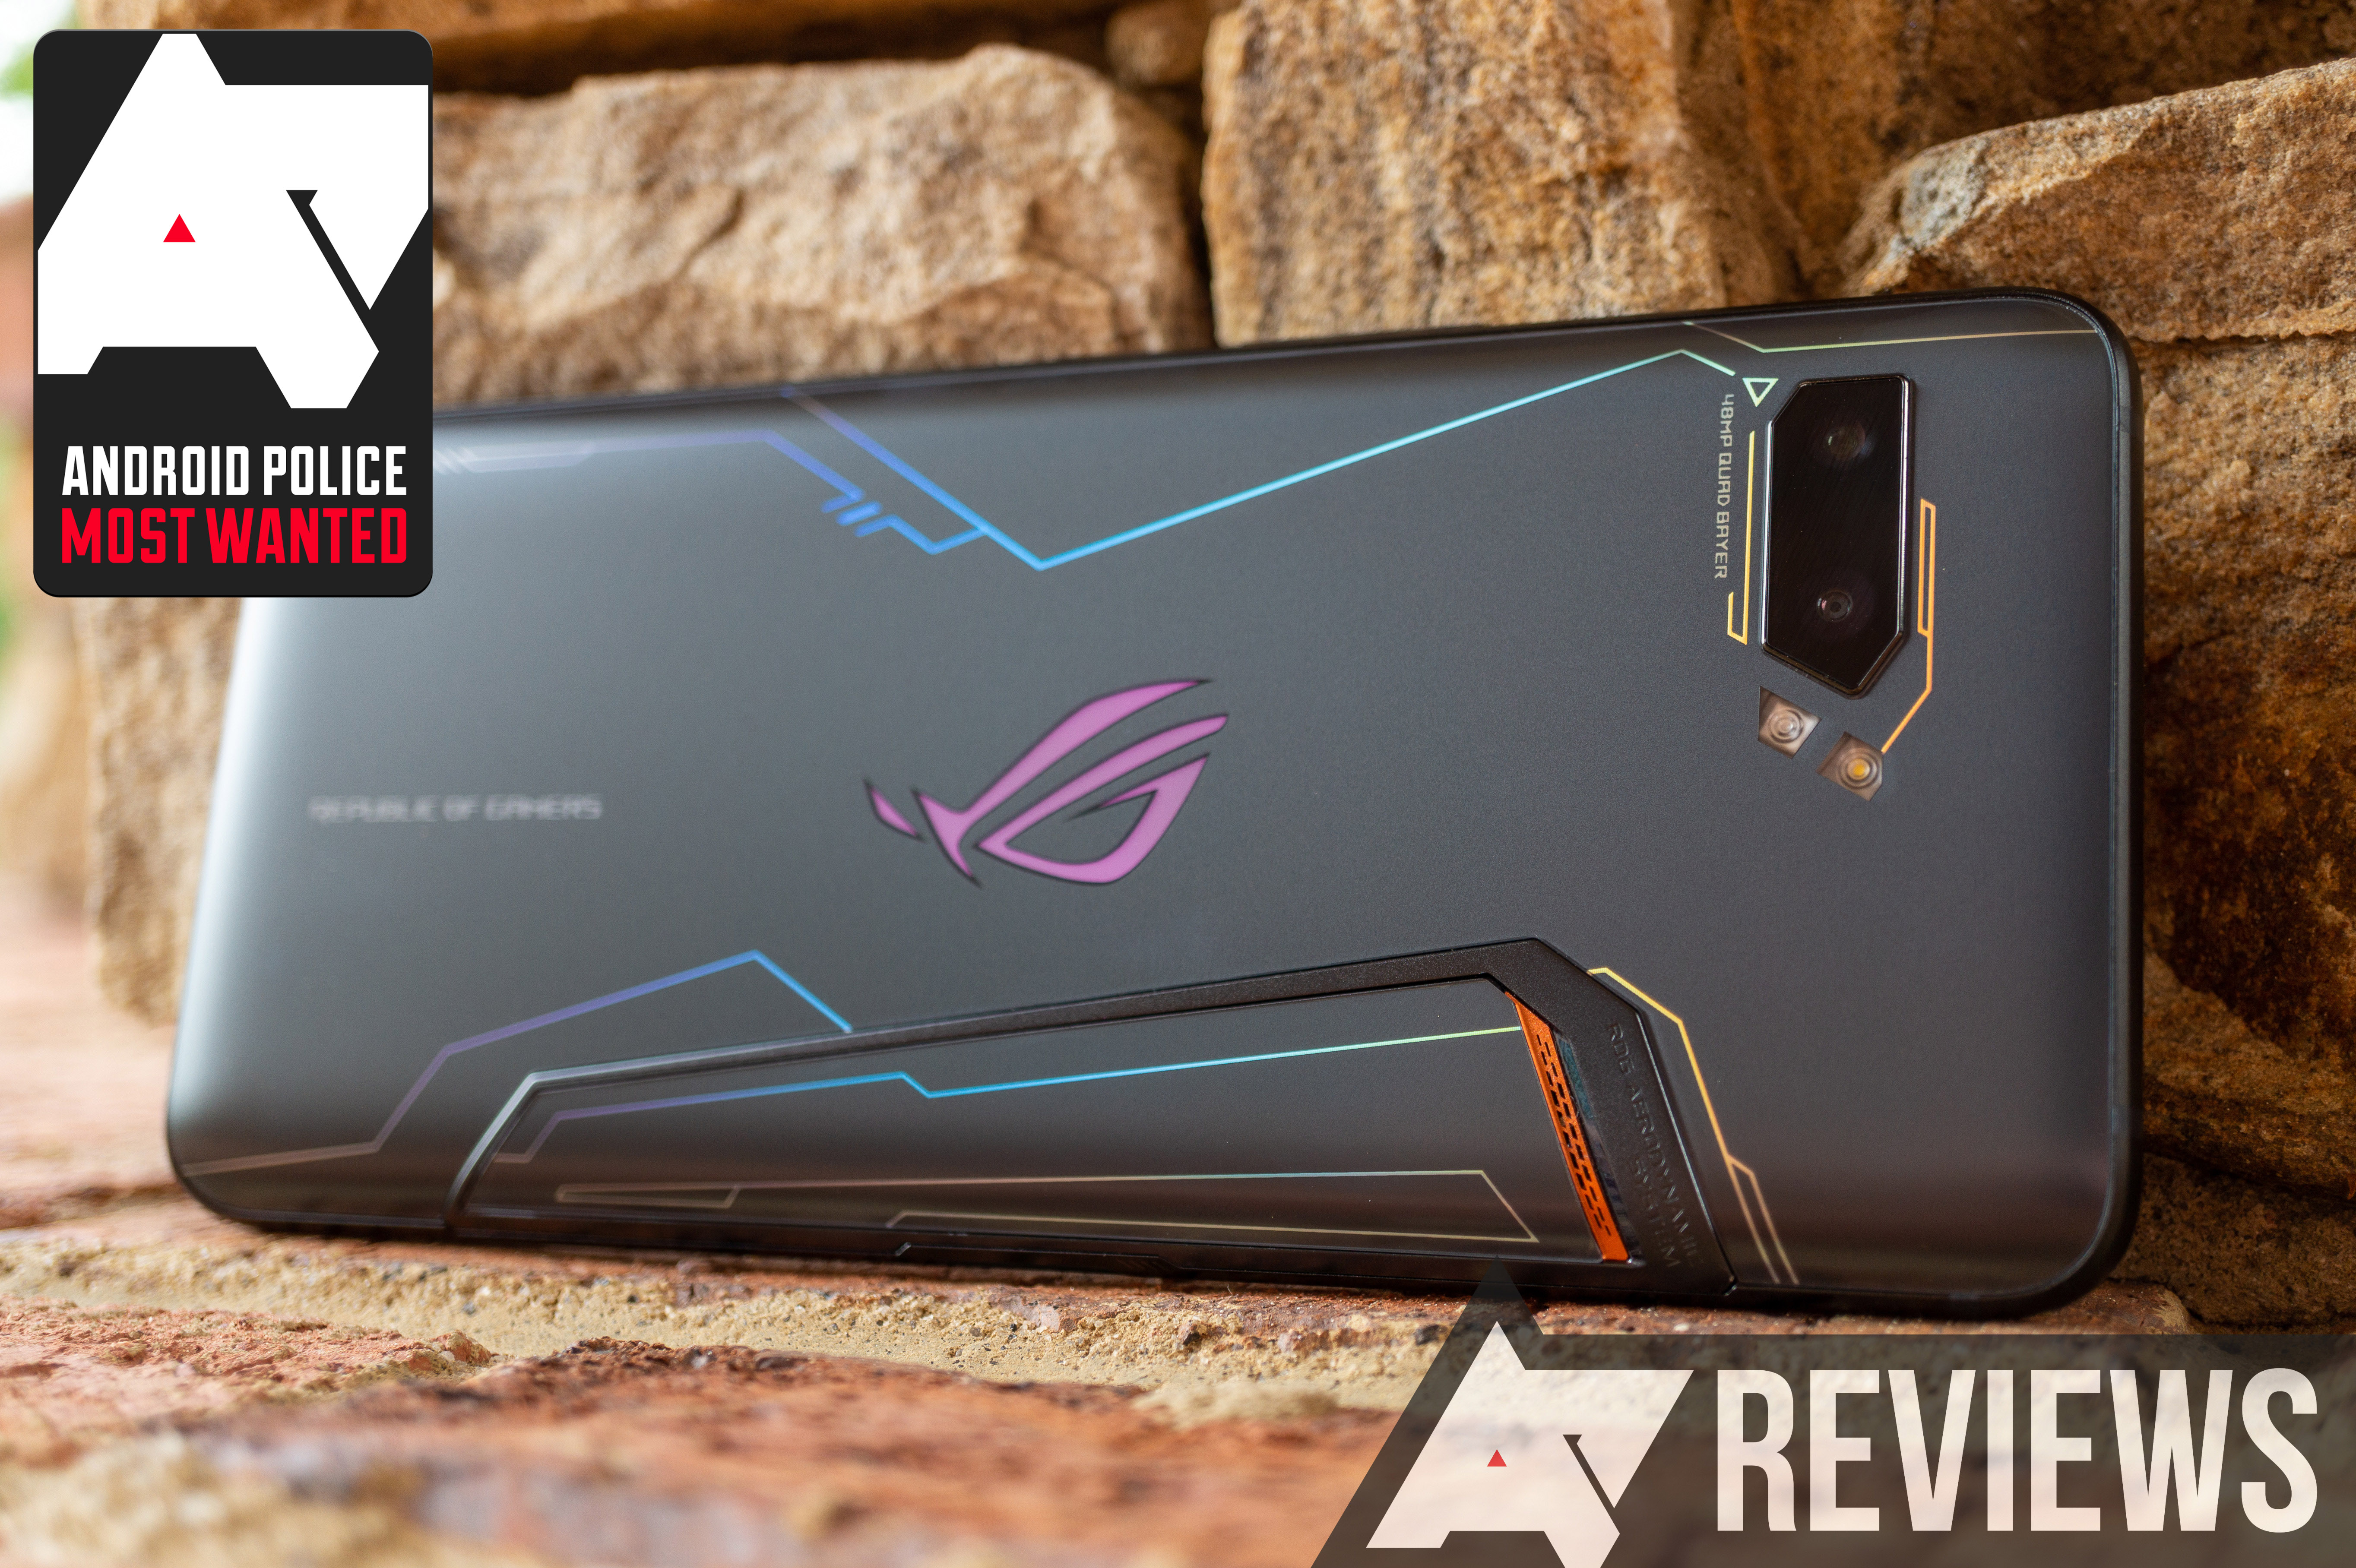 Asus ROG Phone 2 review: The race car that wants to be your daily driver